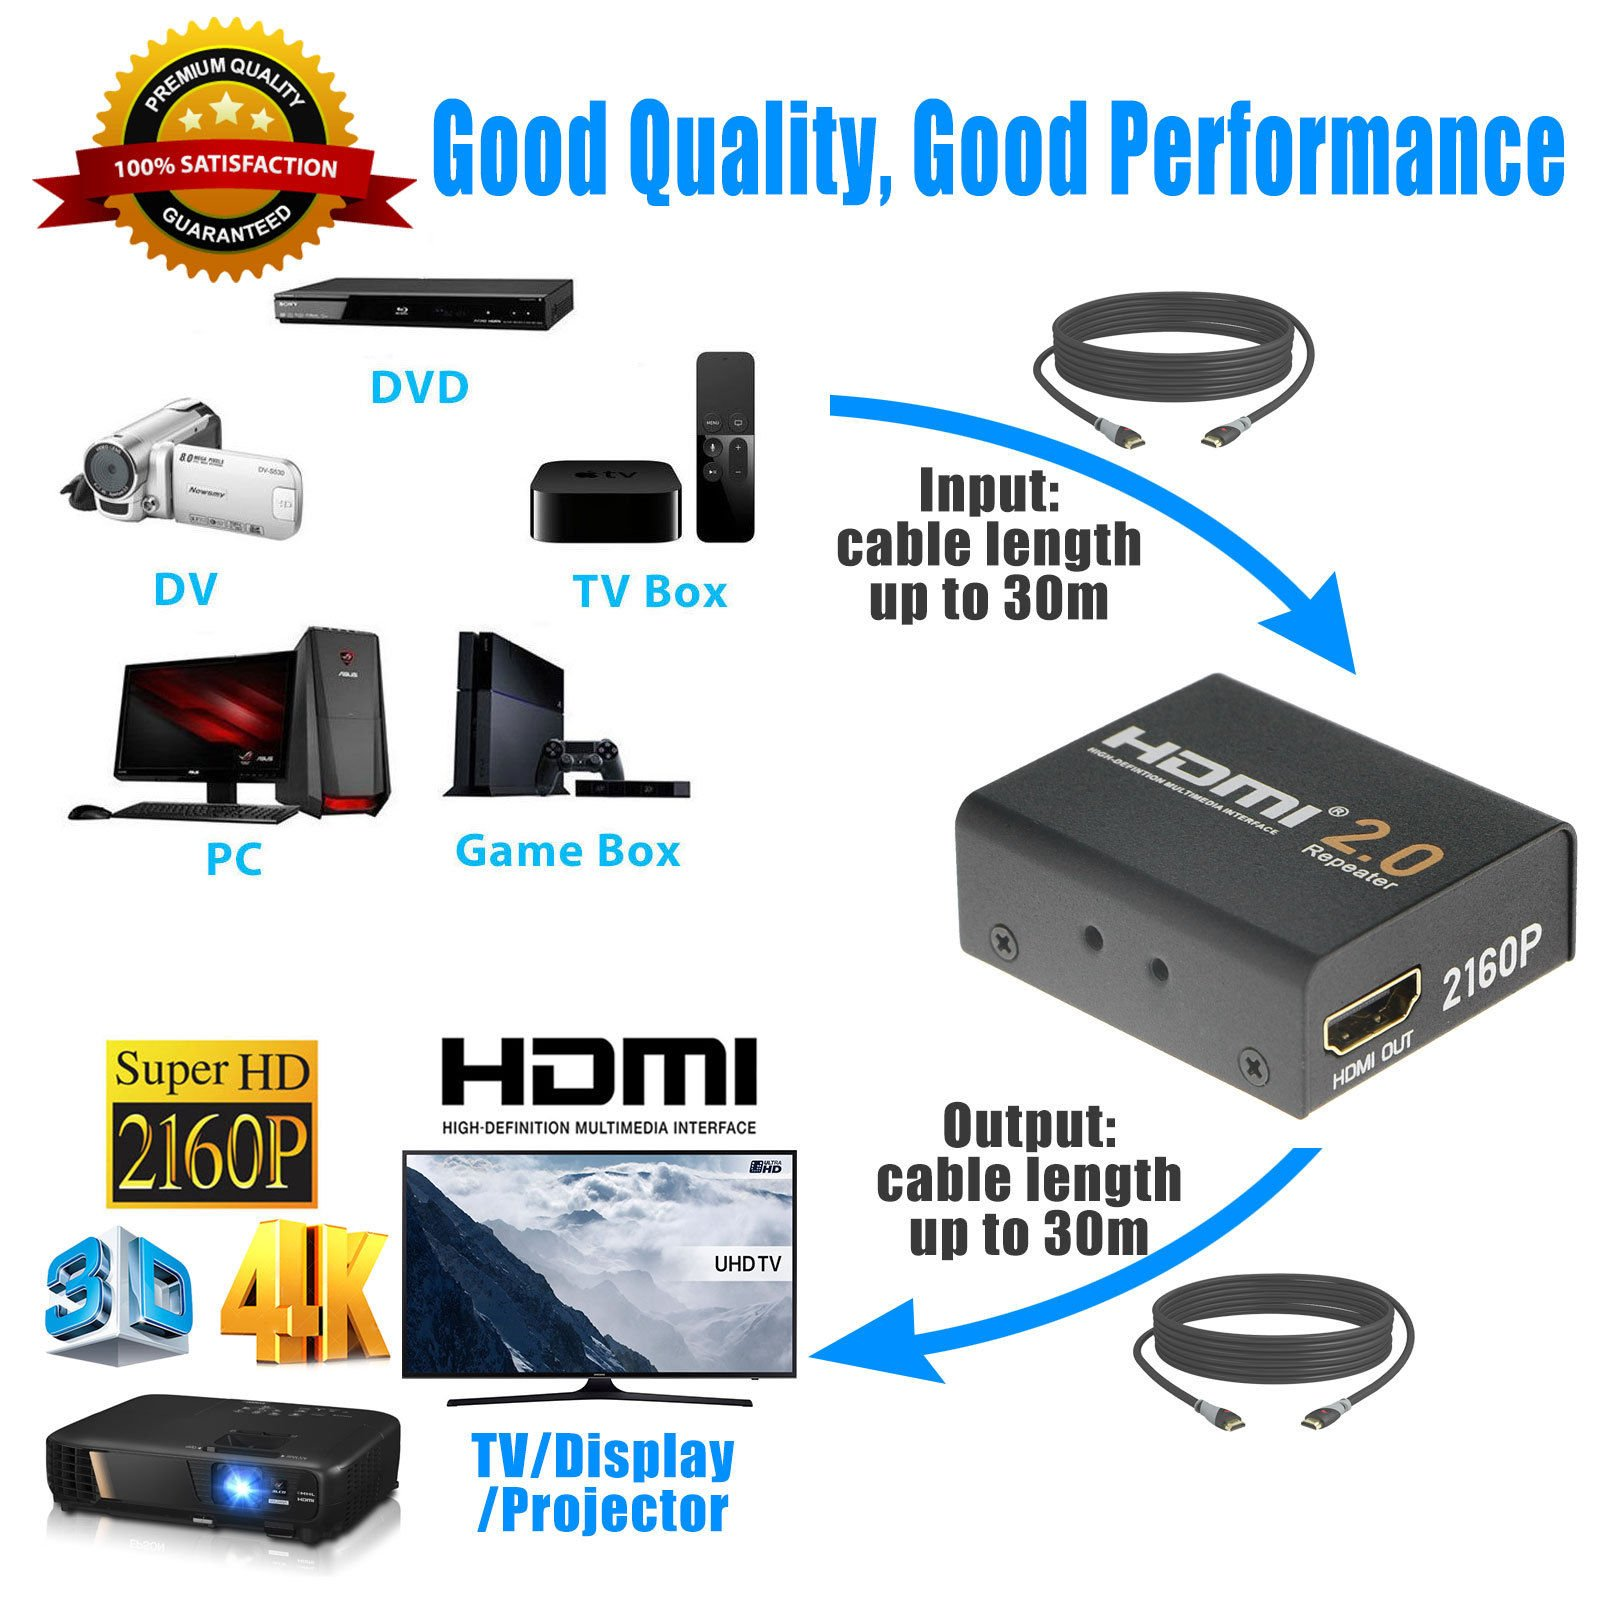 2160P 3D 4K HDMI Signal Repeater Extender Booster Adapter Over Signal HDTV 60 Meters Lossless Transmission by KSRplayer (Image #7)